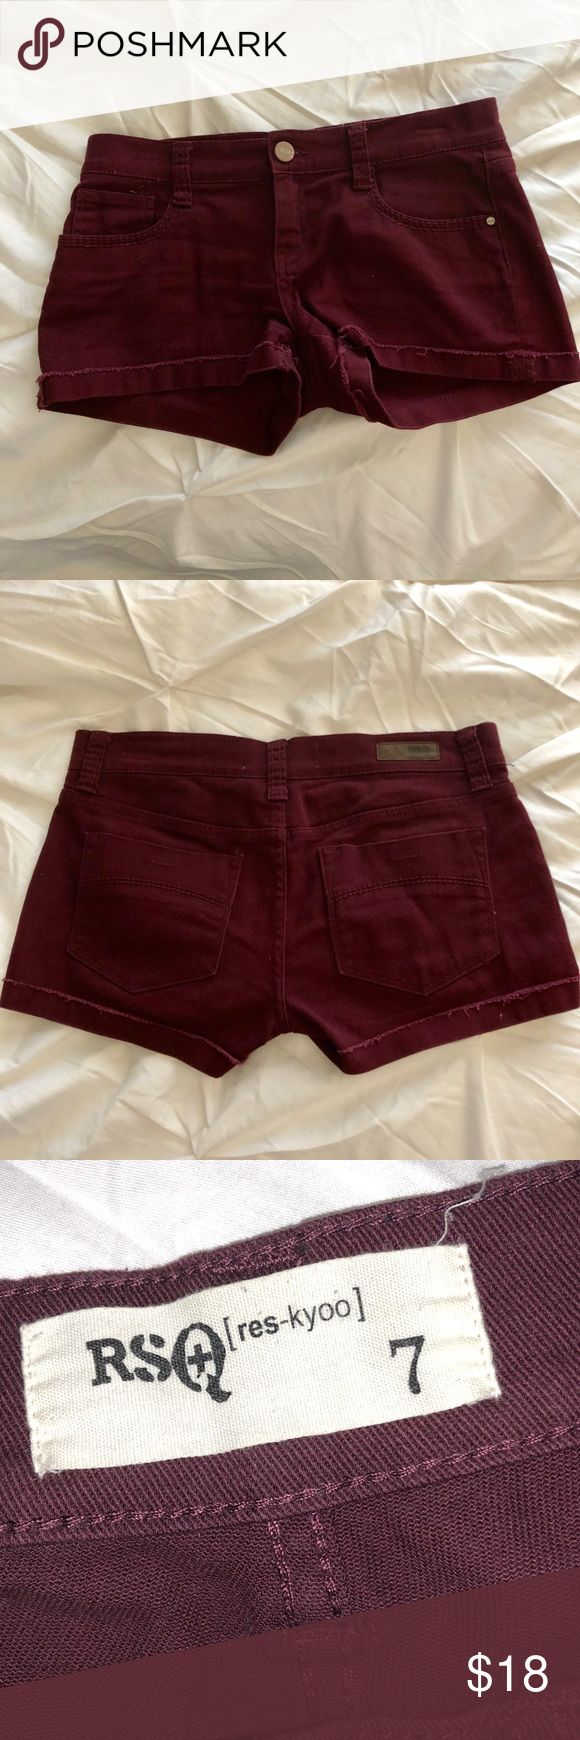 RSQ MAROON SHORTS Gently used but in excellent condition!  Maroon or burgundy in color Tilly's Shorts Jean Shorts